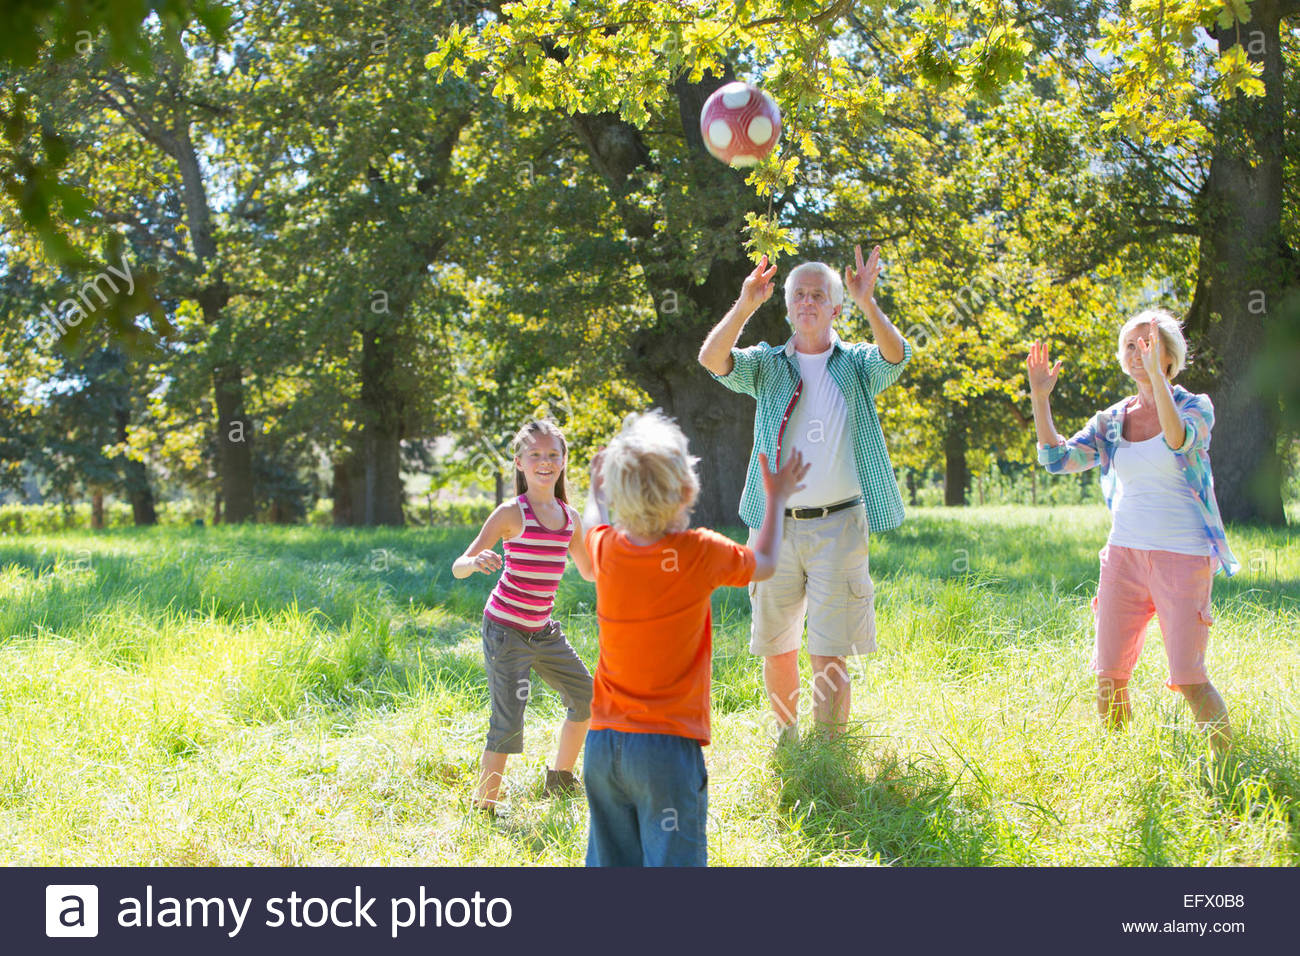 Multi generation family, playing catch, in treelined field - Stock Image